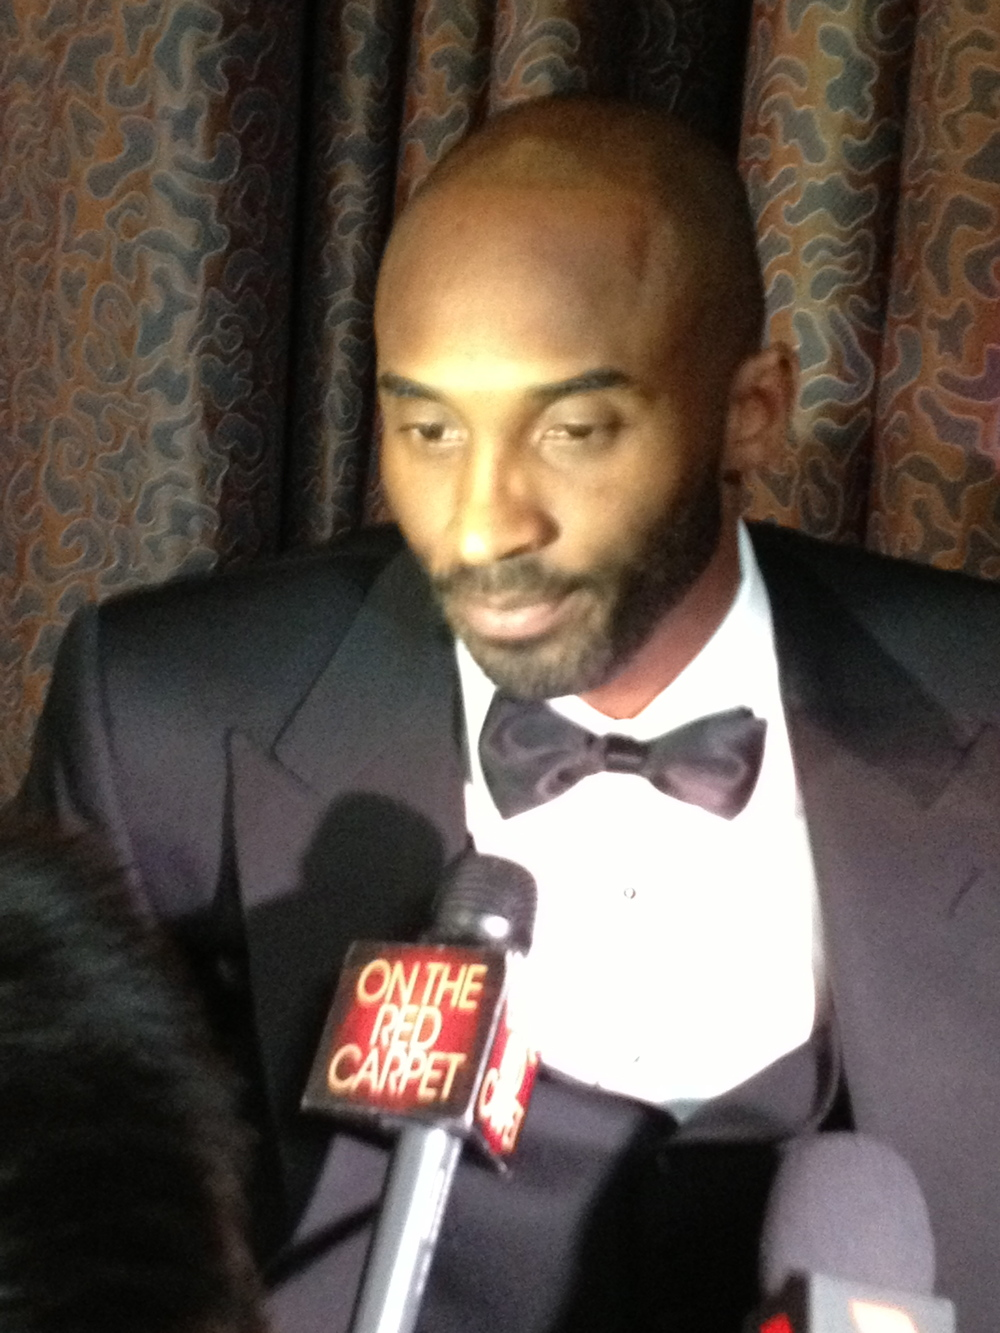 Here is a close up of Kobe Bryant interviewing with our on the  Red Carpet  reporter Tony Cabrera.